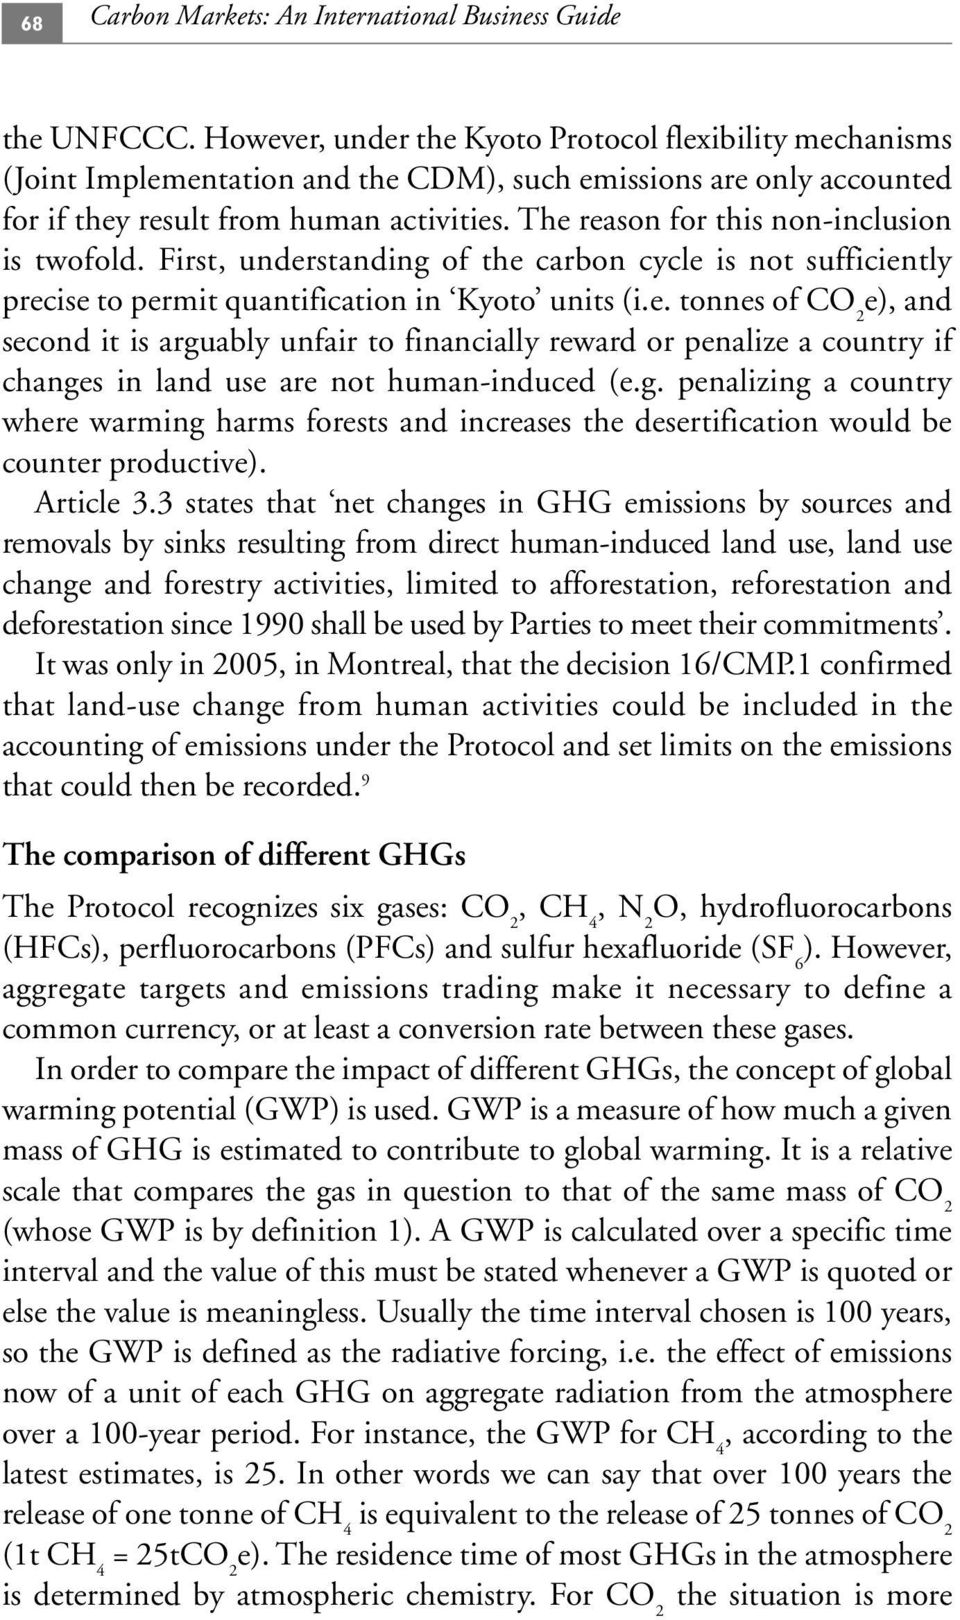 The reason for this non-inclusion is twofold. First, understanding of the carbon cycle is not sufficiently precise to permit quantification in Kyoto units (i.e. tonnes of CO 2 e), and second it is arguably unfair to financially reward or penalize a country if changes in land use are not human-induced (e.